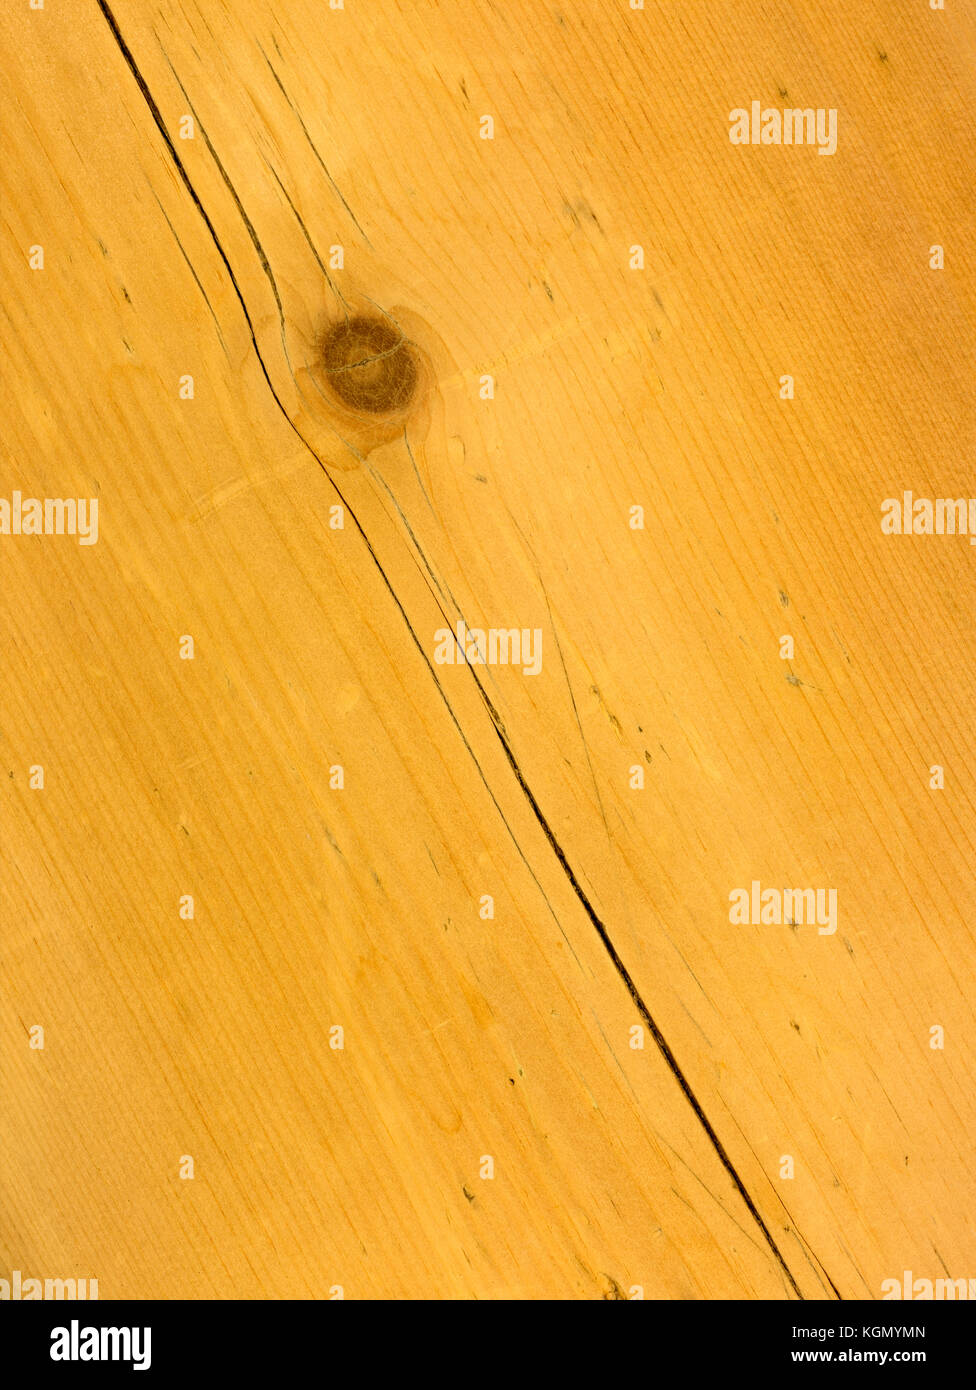 A wooden table top shot from overhead - Stock Image